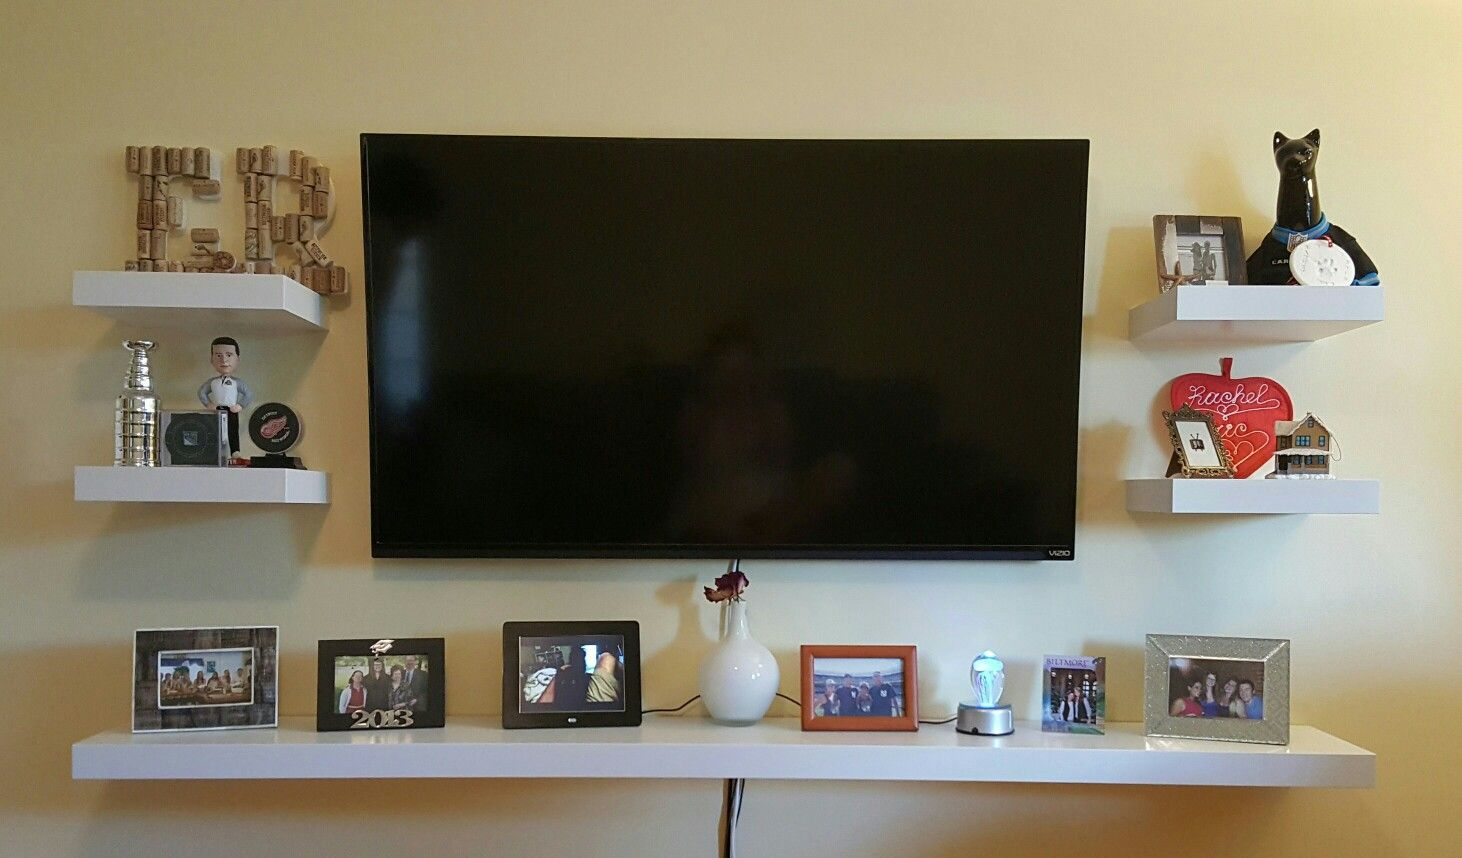 Wall Shelving Ideas For Living Room wall mounted tv decor! floating shelves make the entire wall a